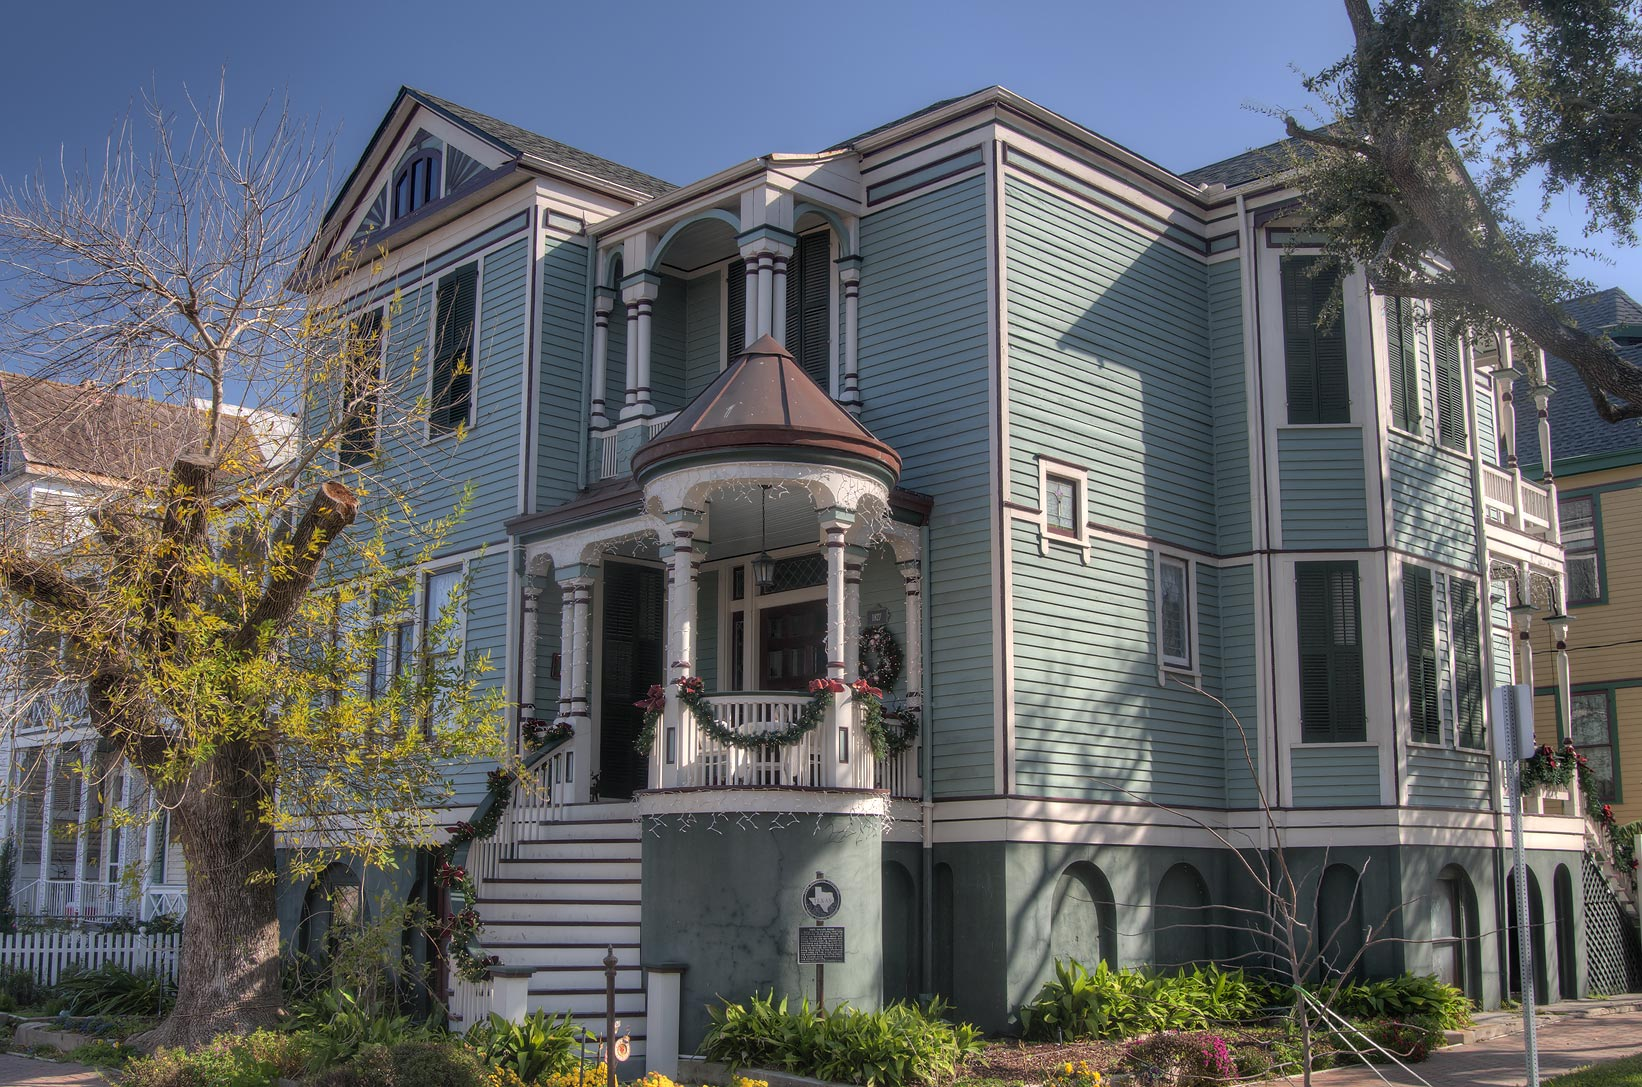 Maud J. H. Moller house (c. 1895) at 1827 Ball St...Historic District. Galveston, Texas